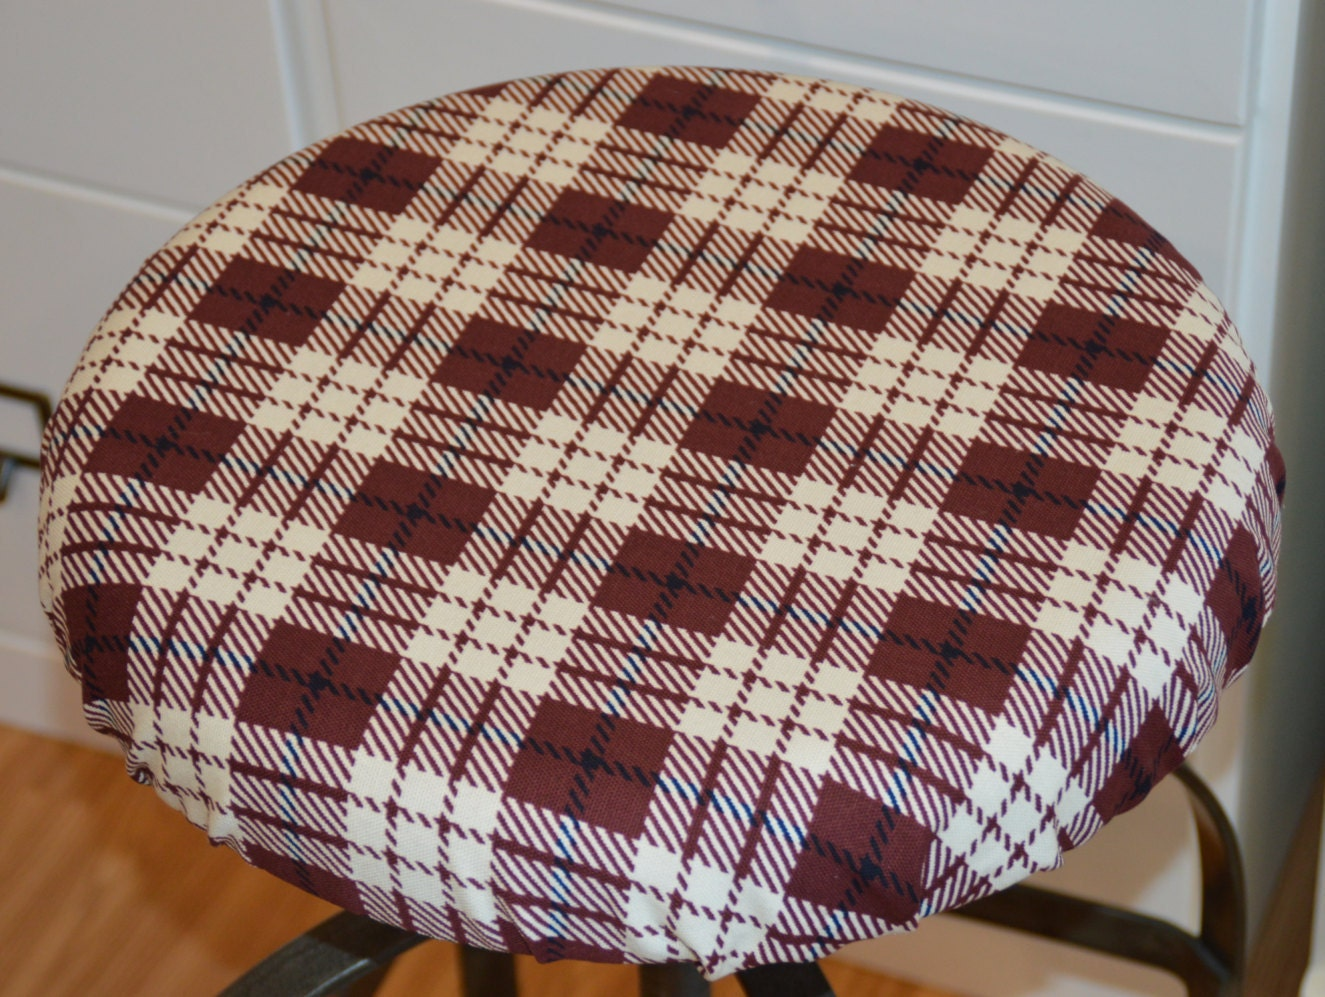 Barstool cover seat cushion cover counterstool cover : ilfullxfull7276697979zq3 from www.etsy.com size 1325 x 997 jpeg 382kB